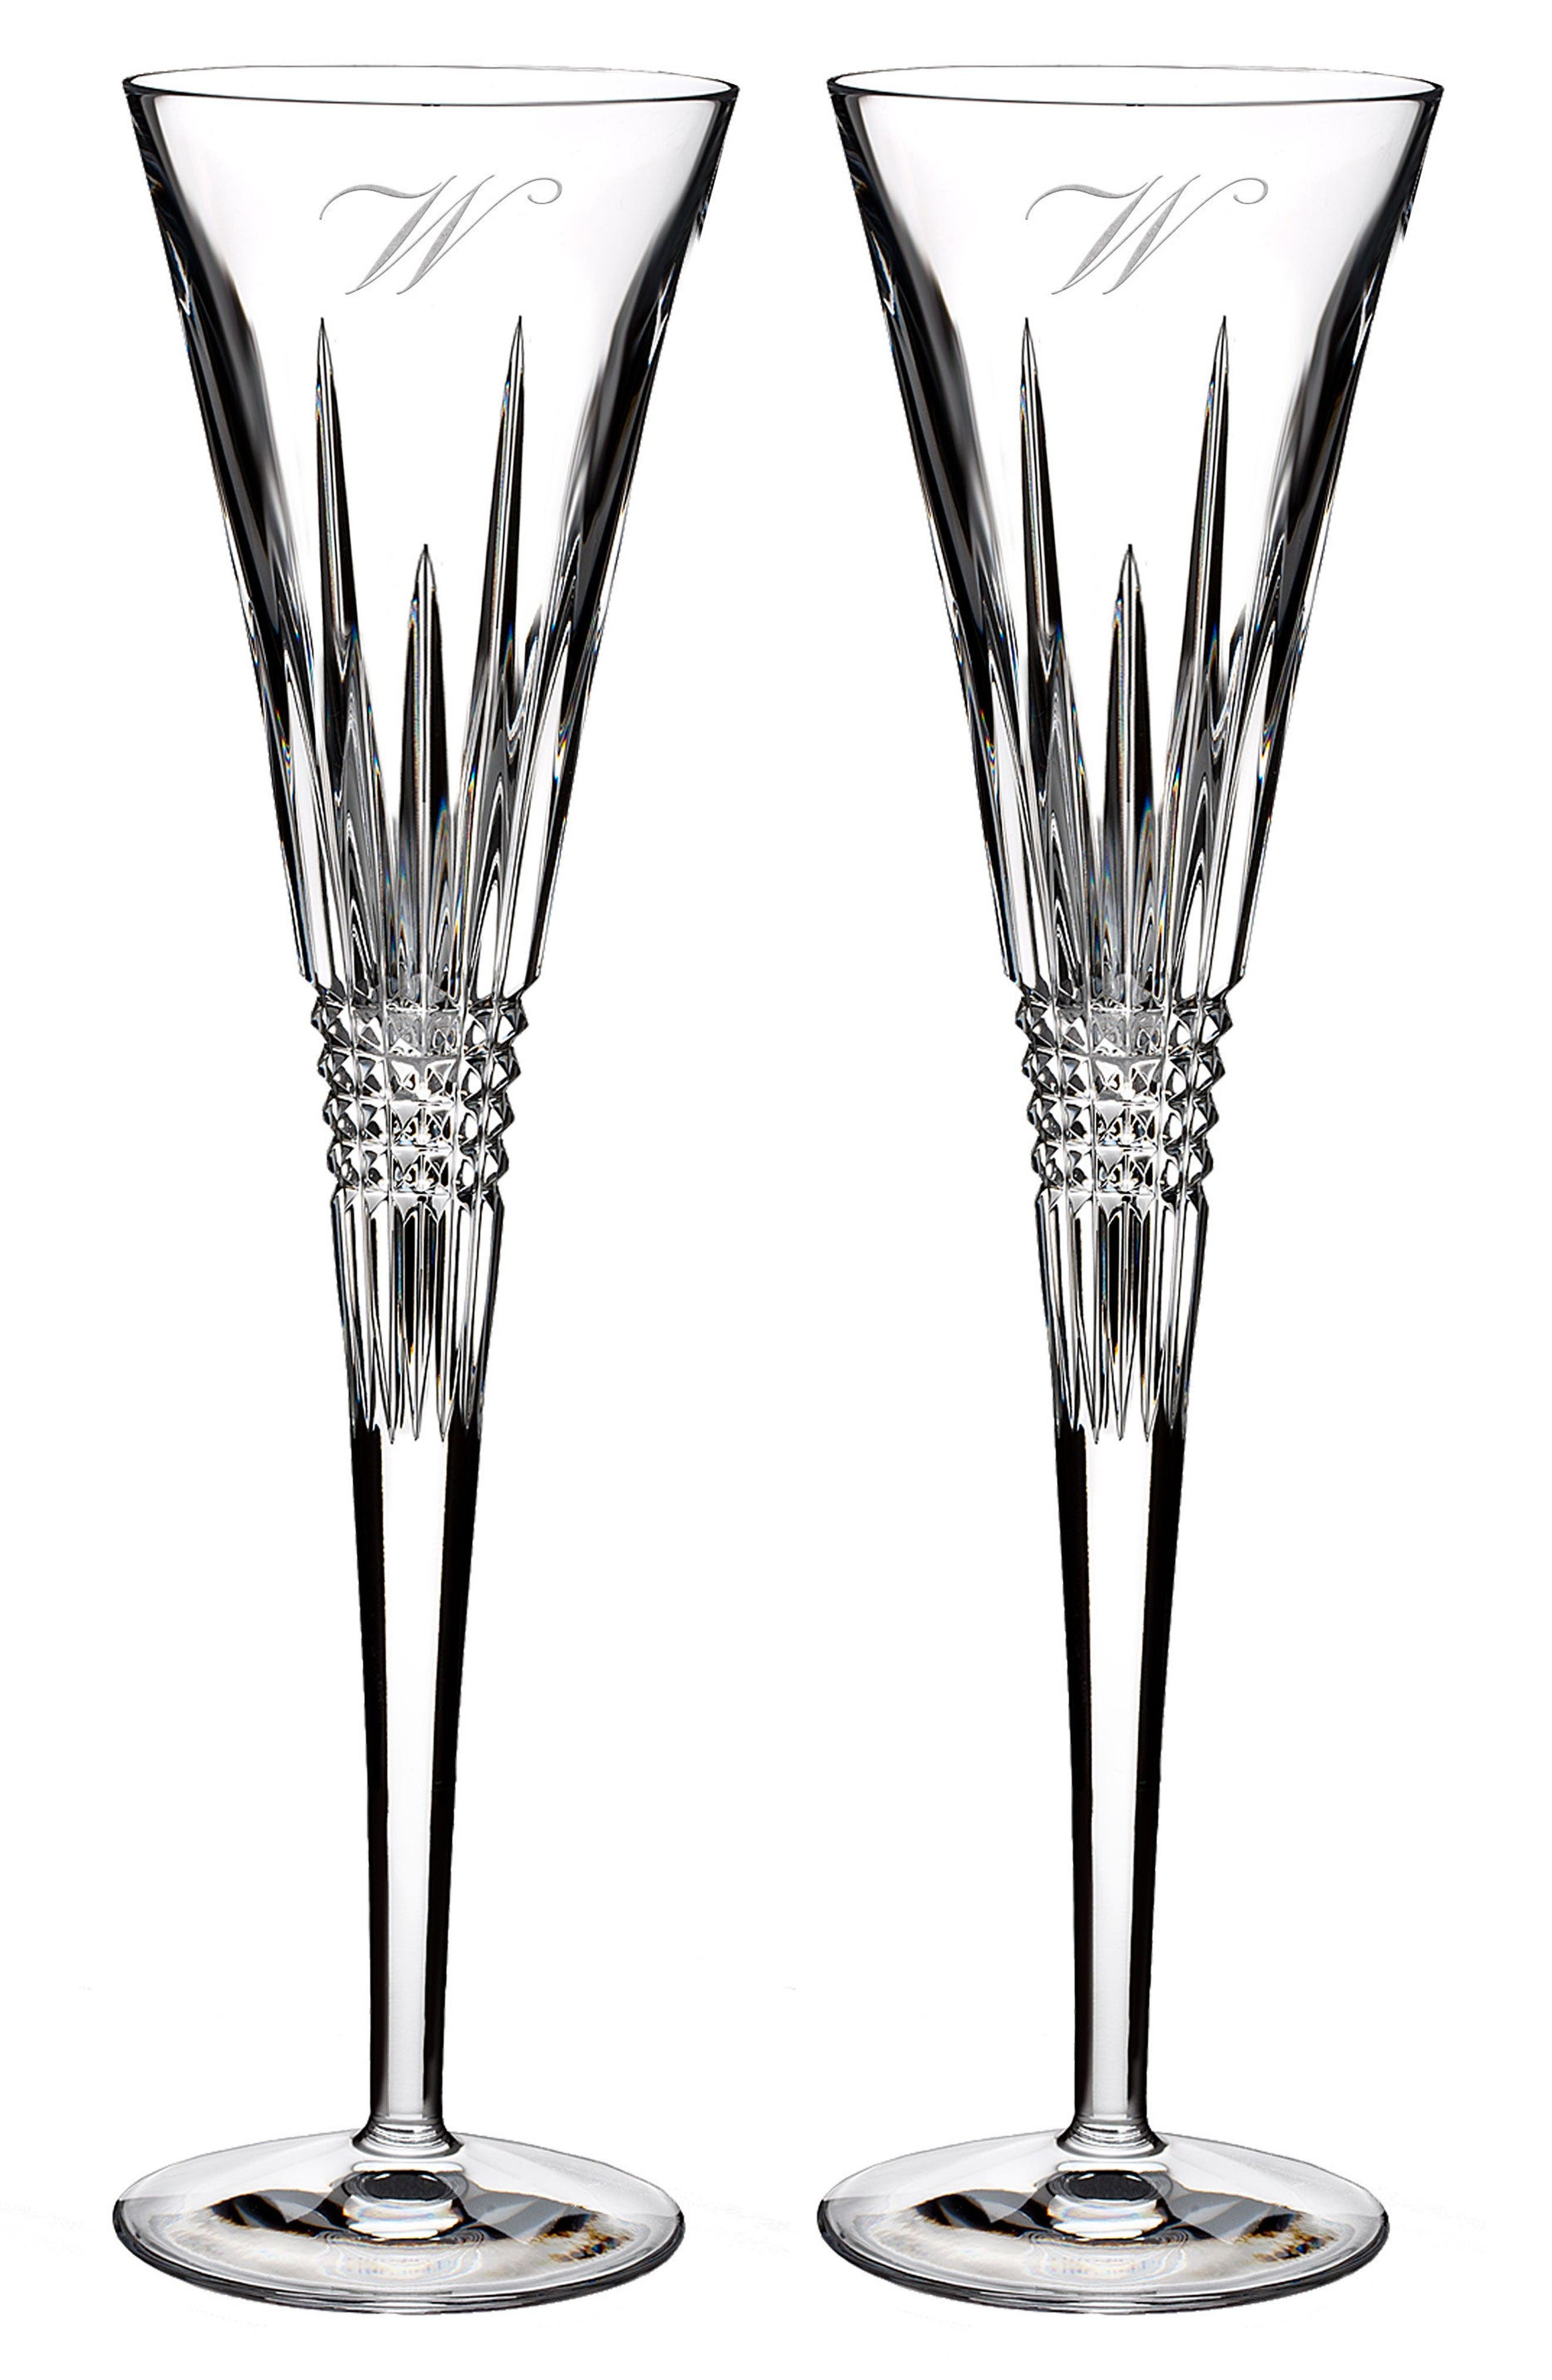 Main Image - Waterford Lismore Diamond Set of 2 Monogram Lead Crystal Champagne Flutes